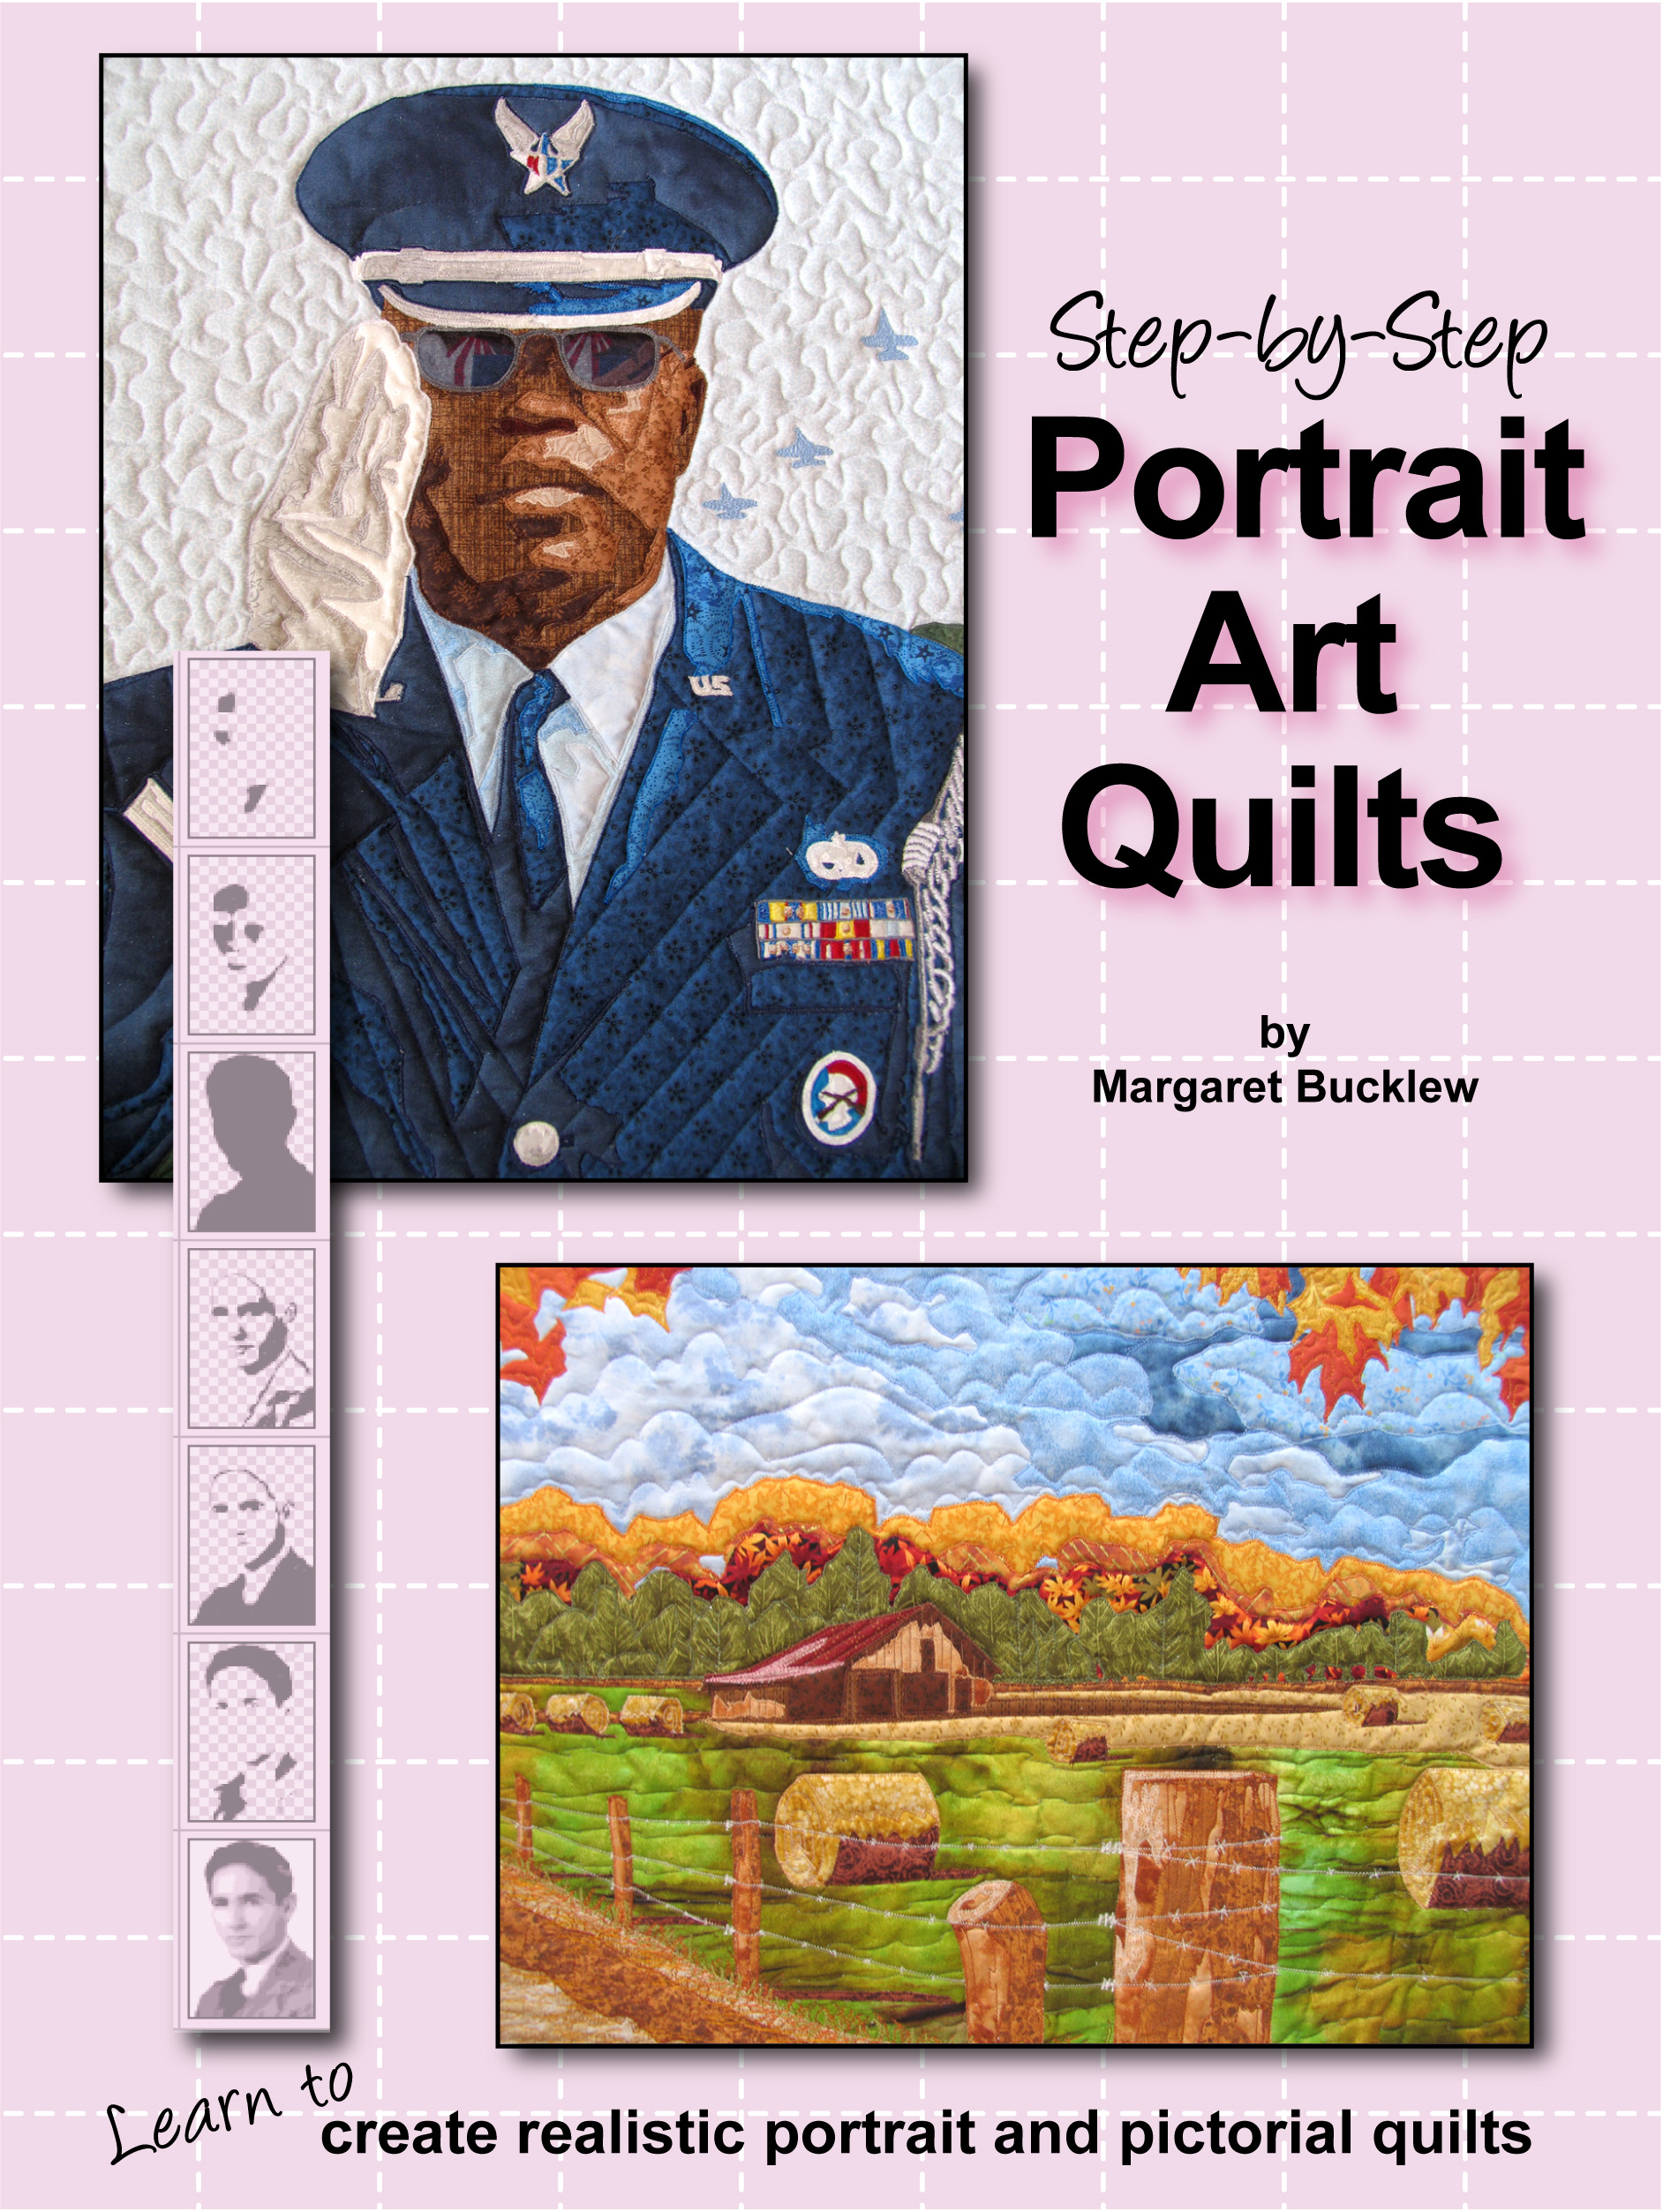 Step by Step Portrait Art Quilts: Learn to Create Realistic Portrait and Pictorial Quilts By: Margaret Bucklew